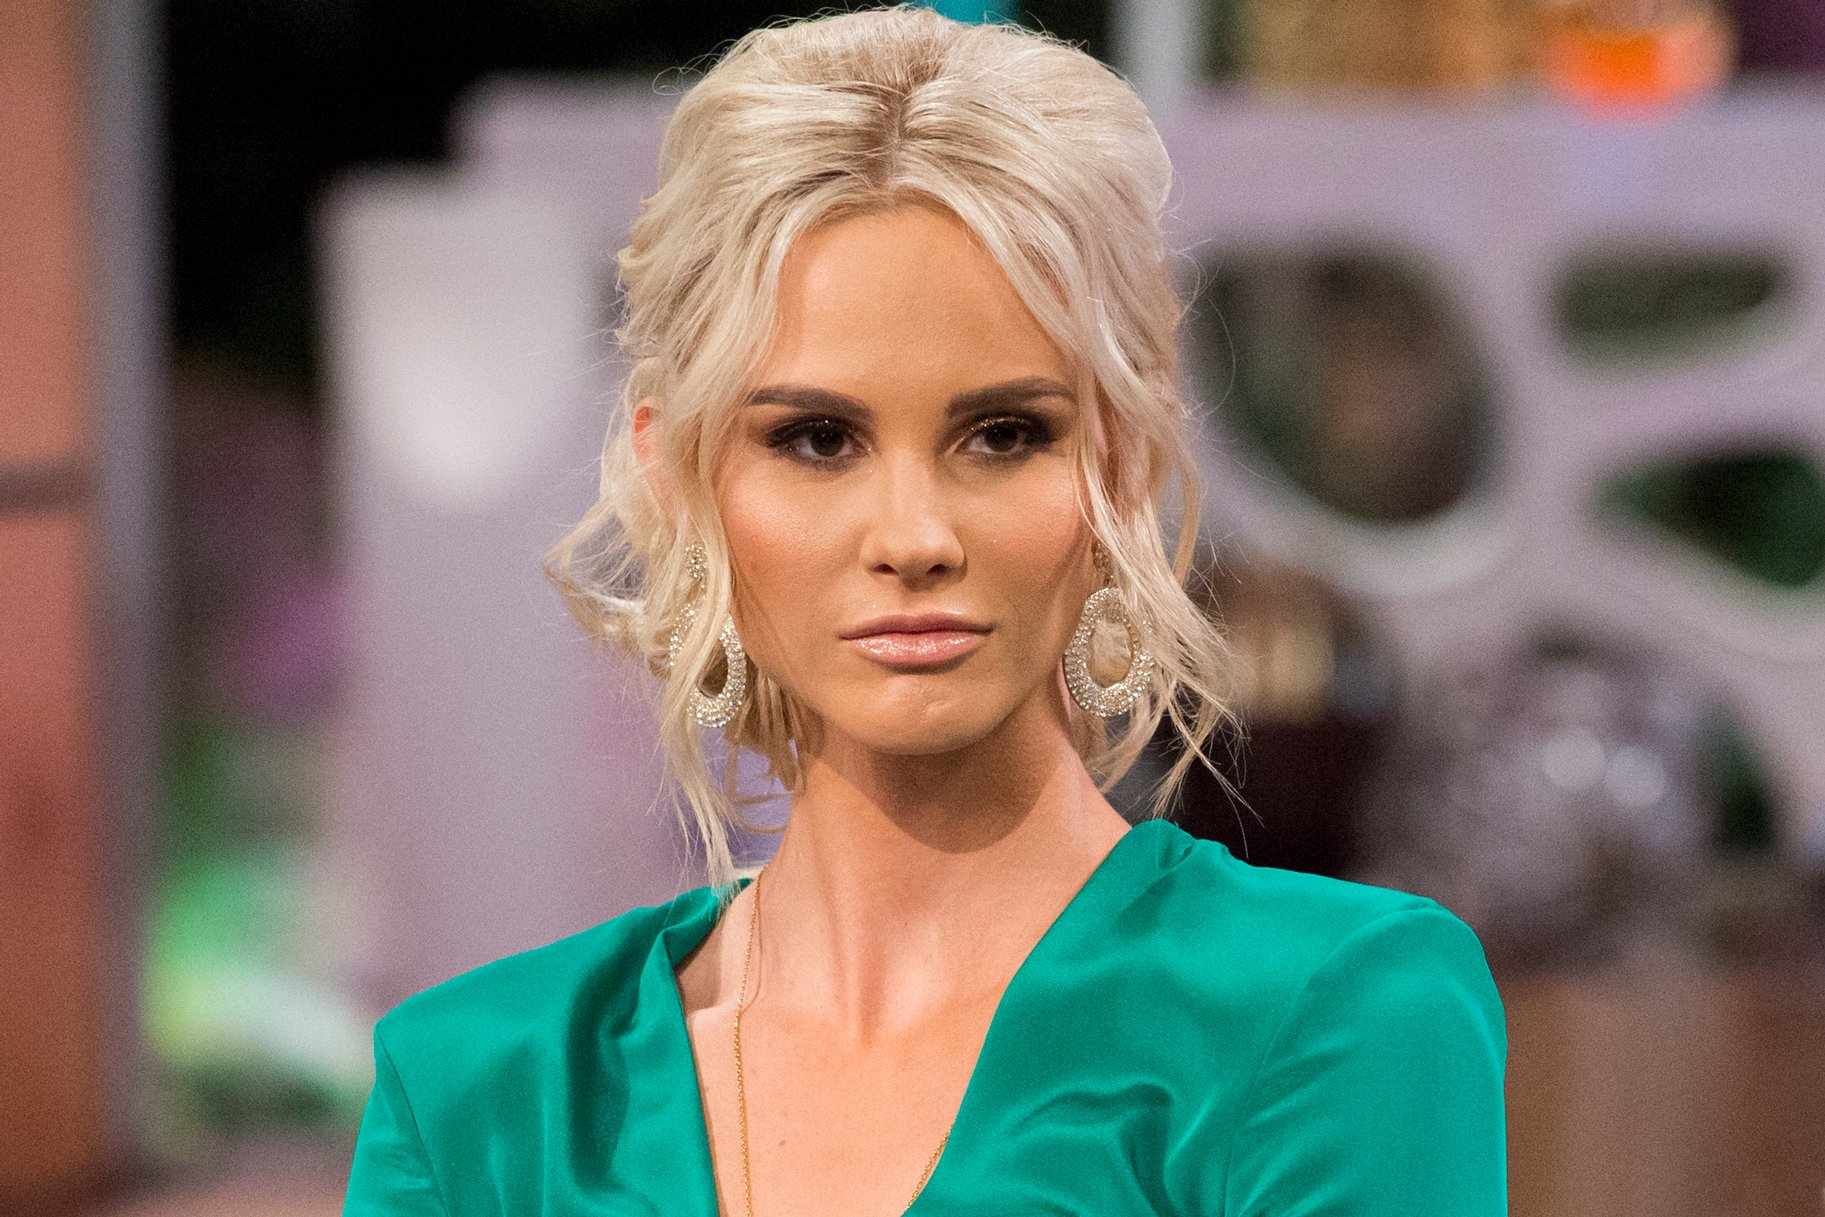 Meghan King Edmonds Has COVID-19 After Feeling Extreme Lethargy